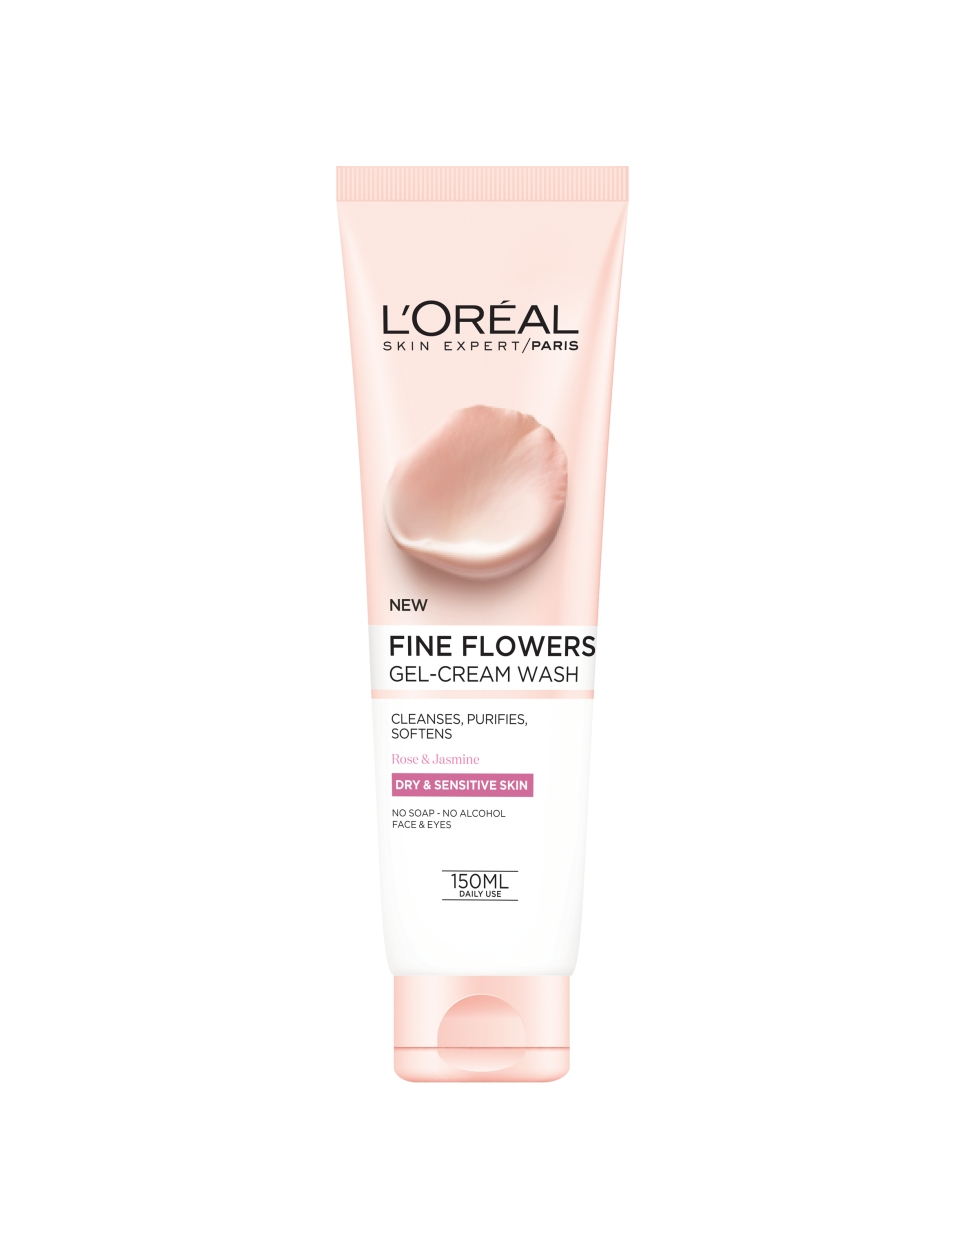 loreal fine flowers cleansing face washes